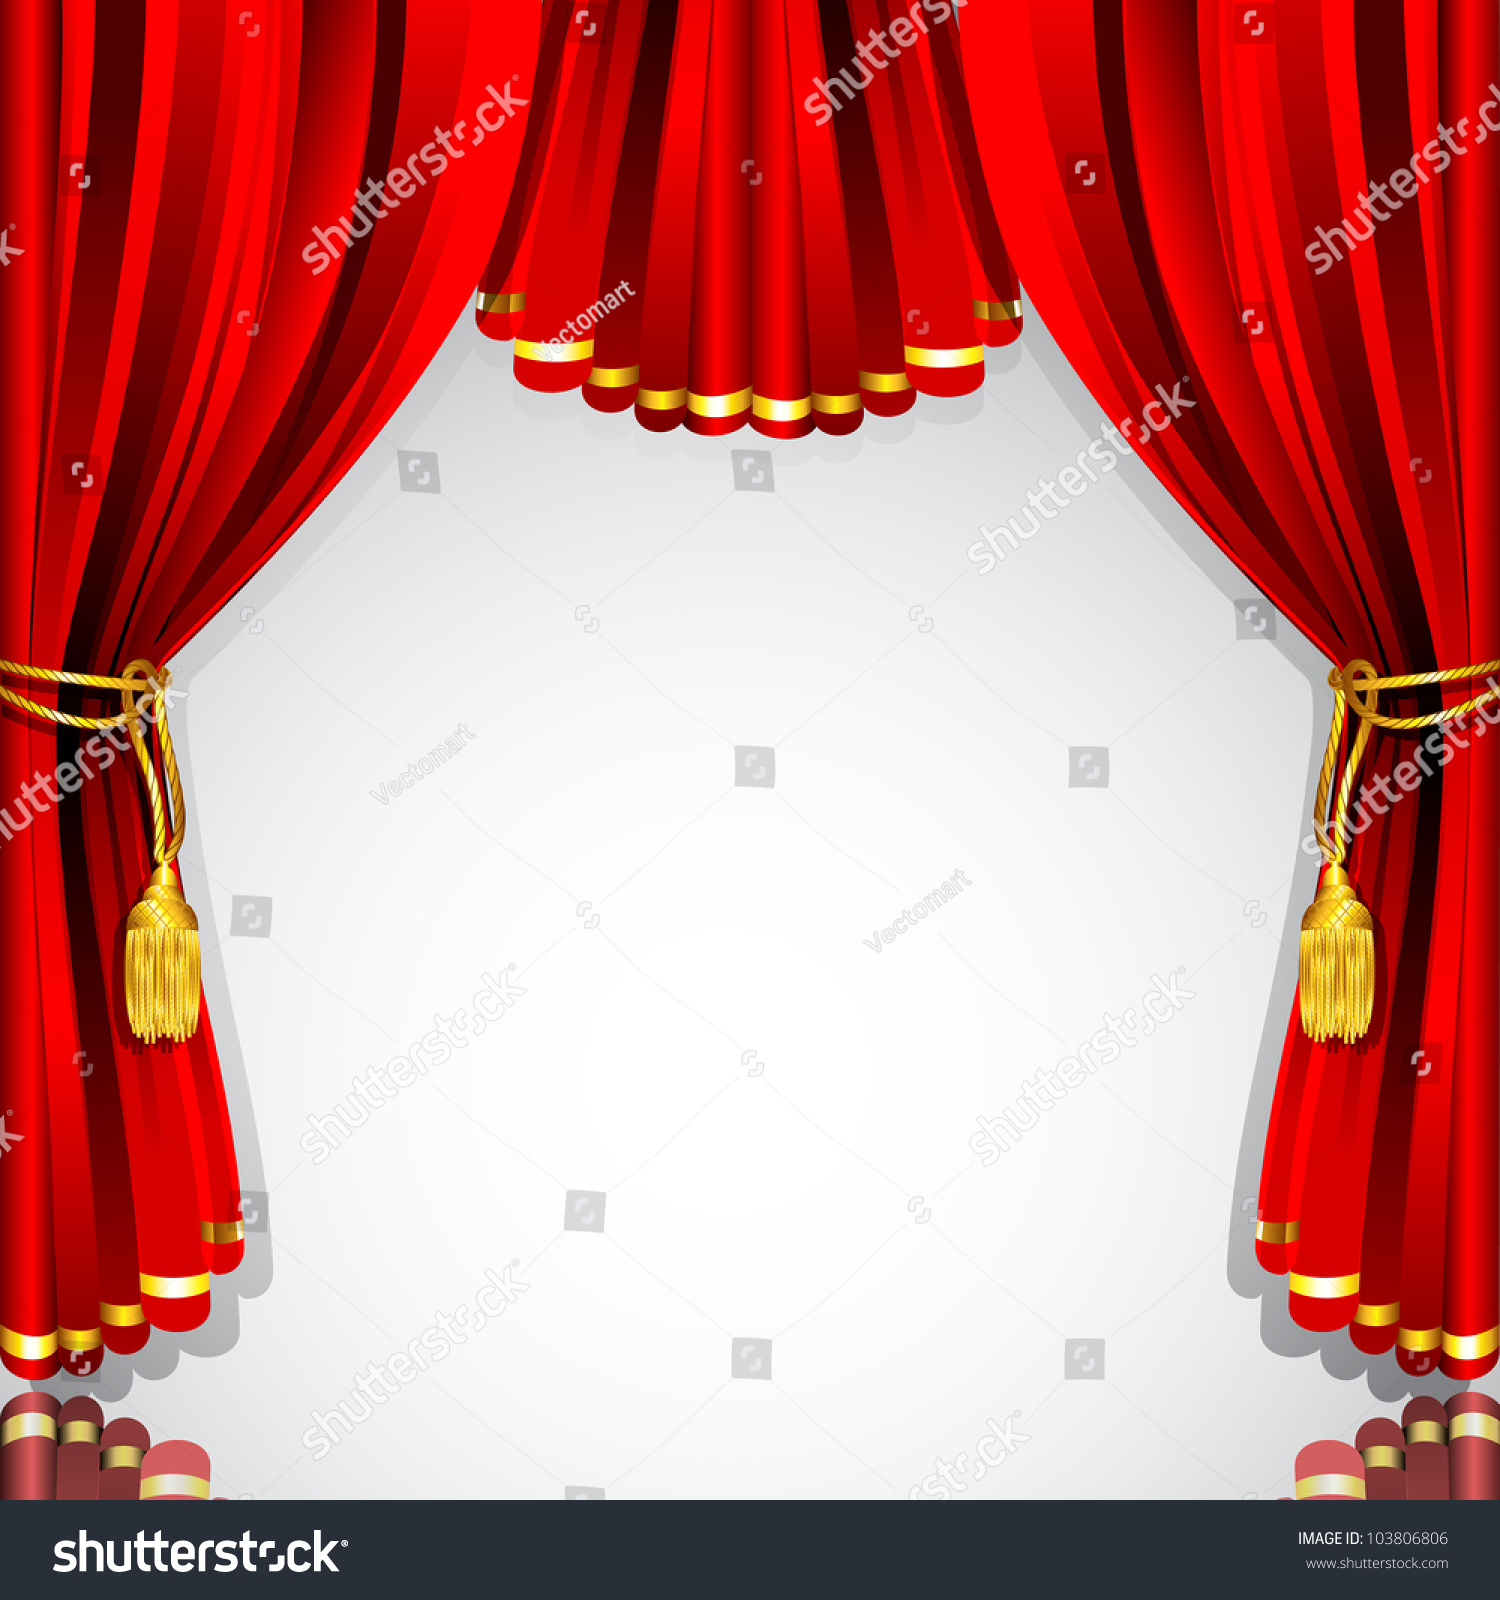 Red stage curtain with lights - Stage Curtain Background Illustration Of Red Stage Curtain Drape On White Background